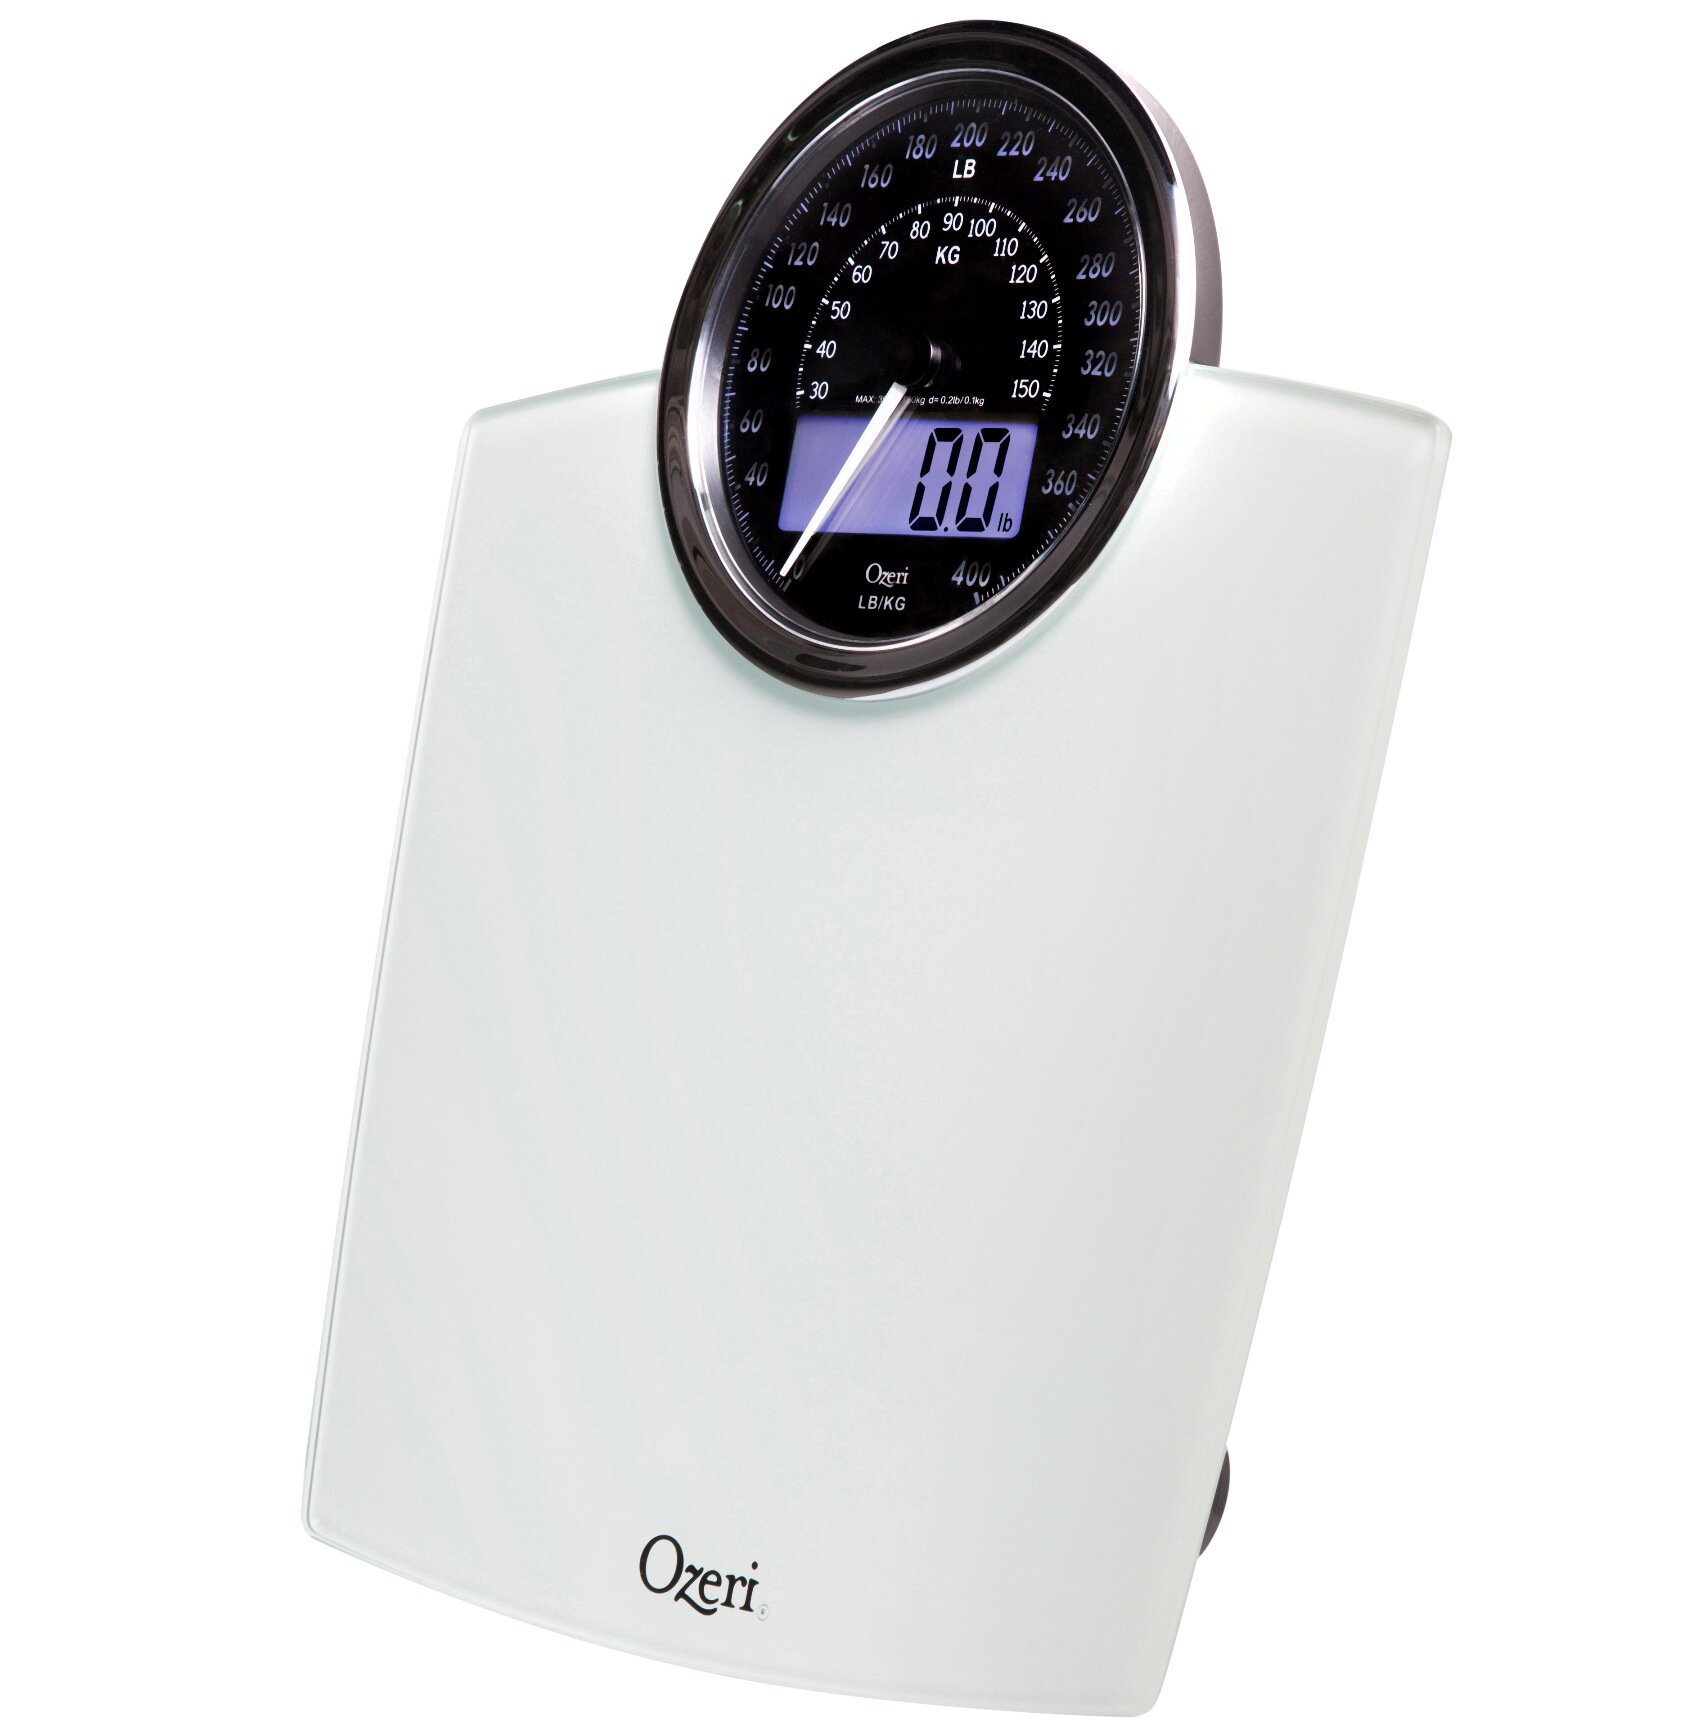 Electronic Bathroom Weighing Scales: Ozeri Rev Digital Bathroom Scale With Electro-Mechanical